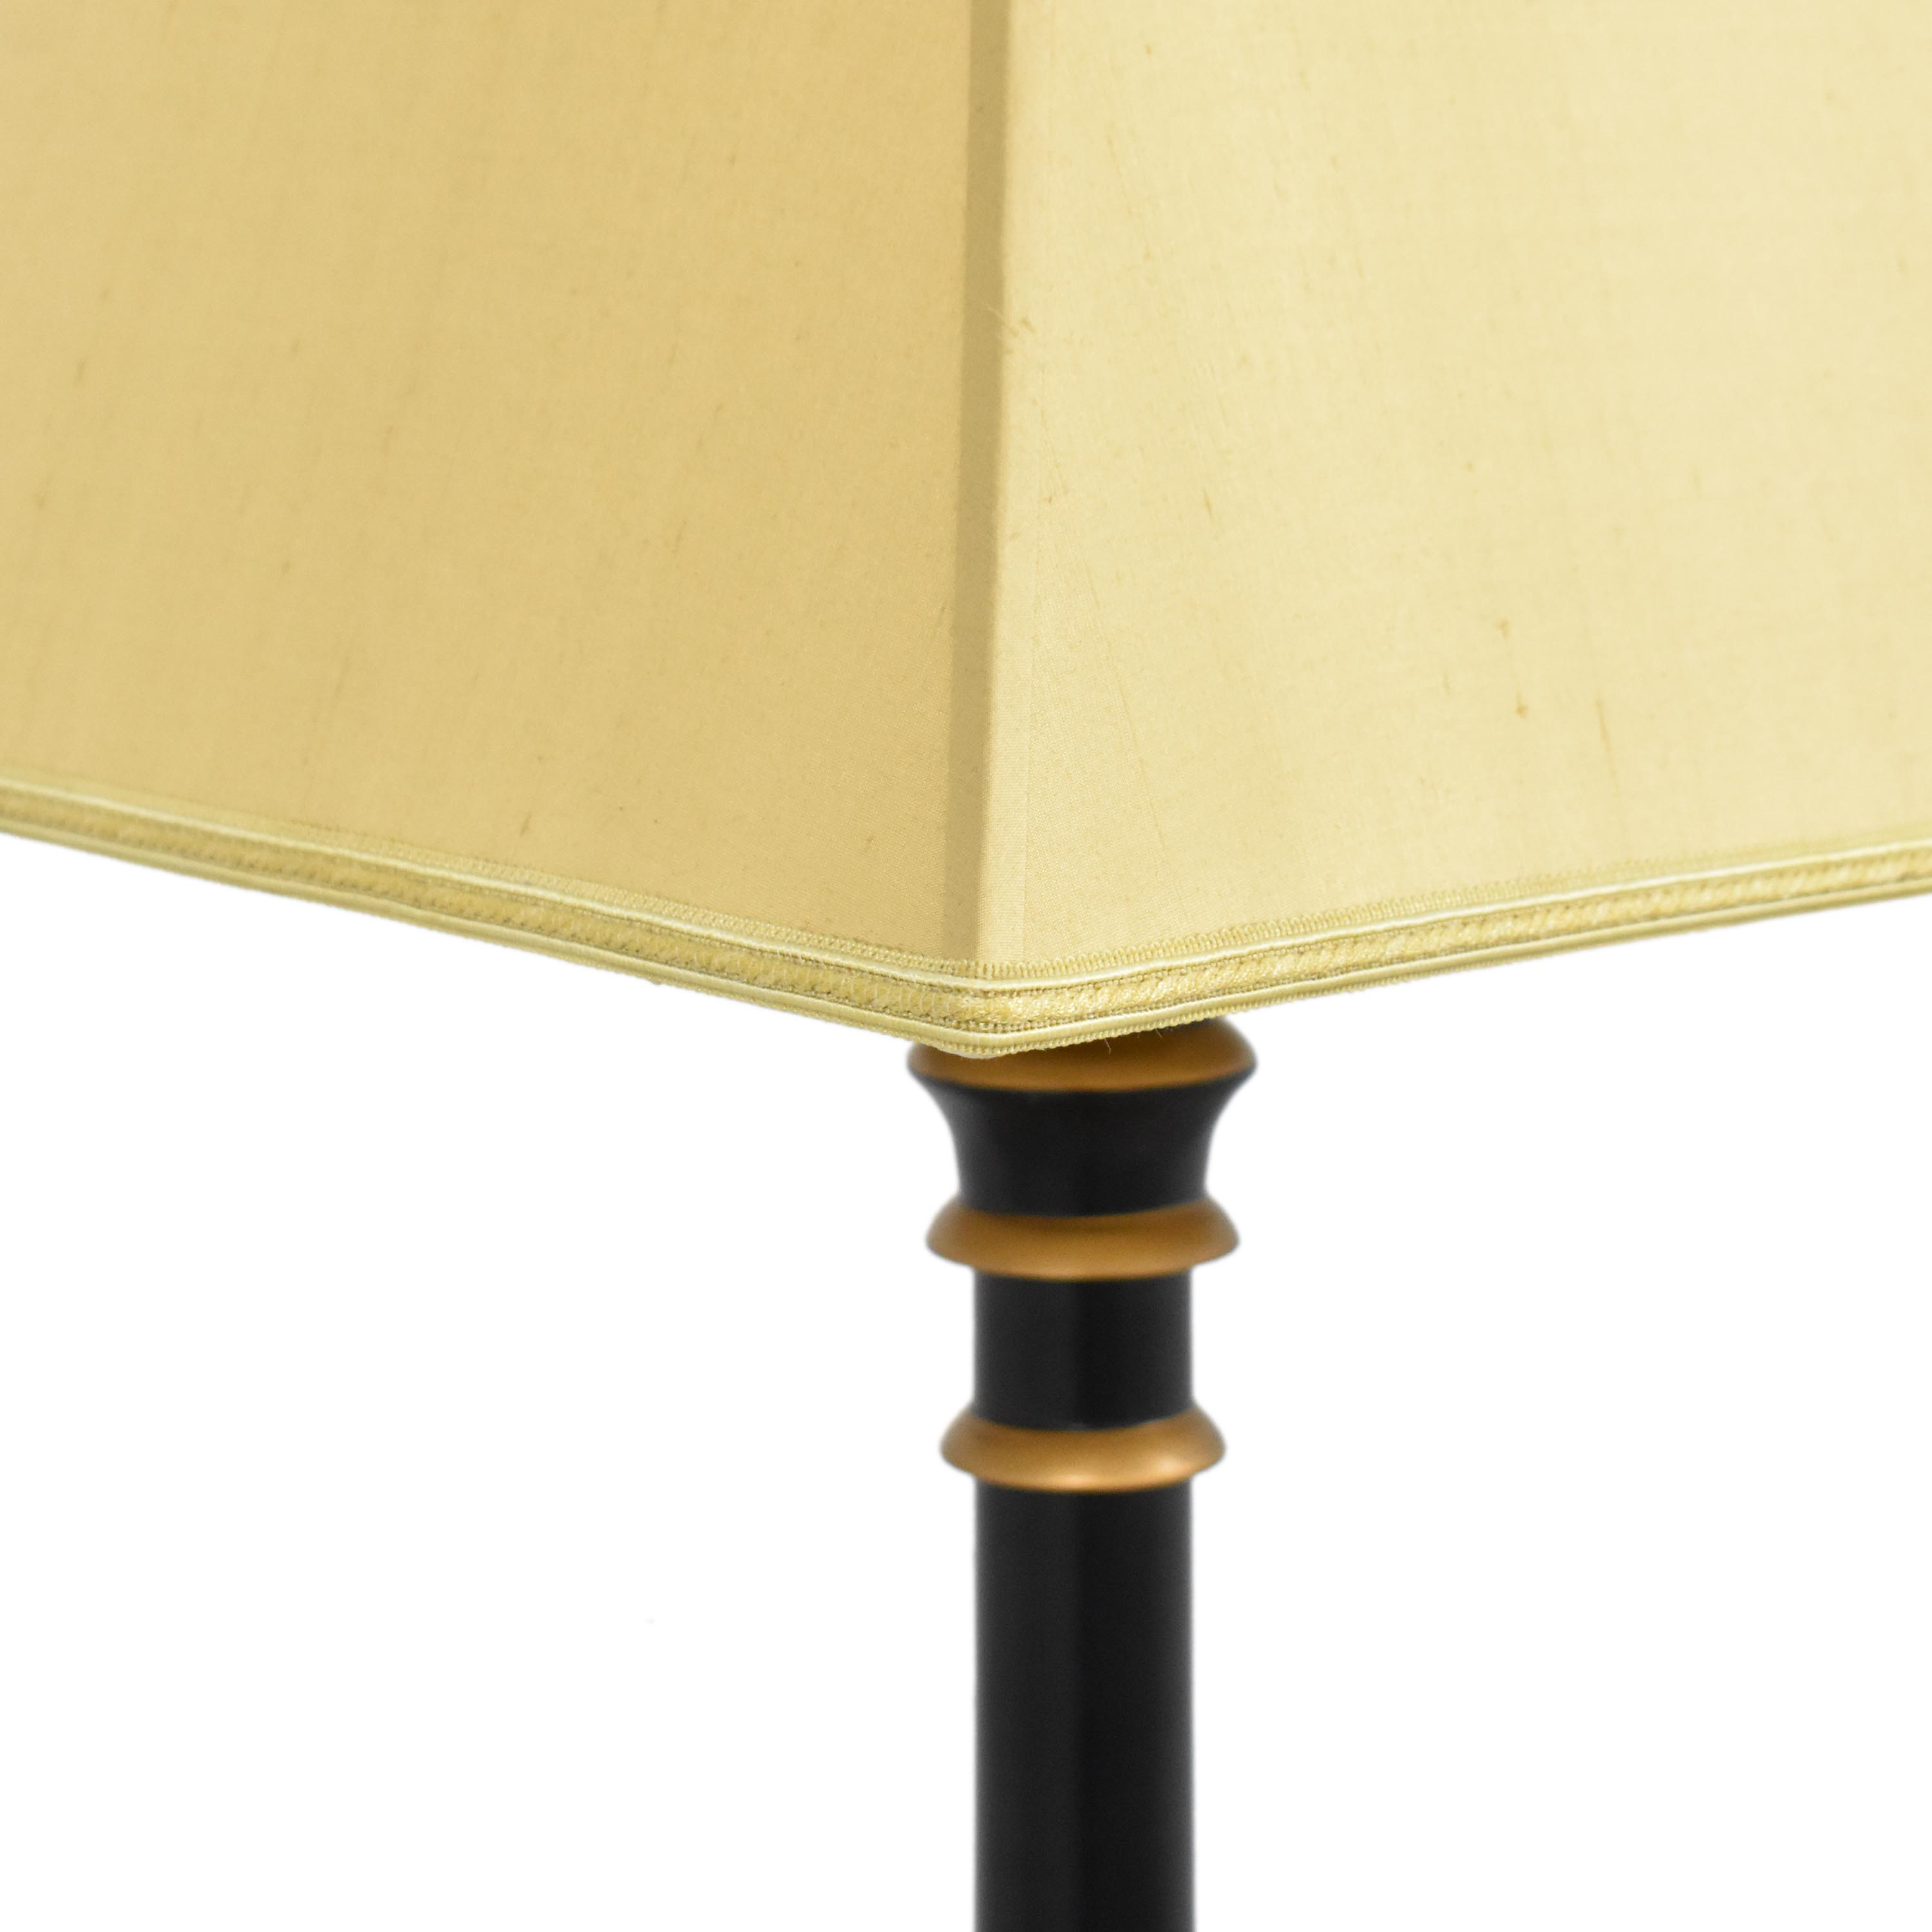 Wildwood Wildwood Candlestick Floor Lamp price